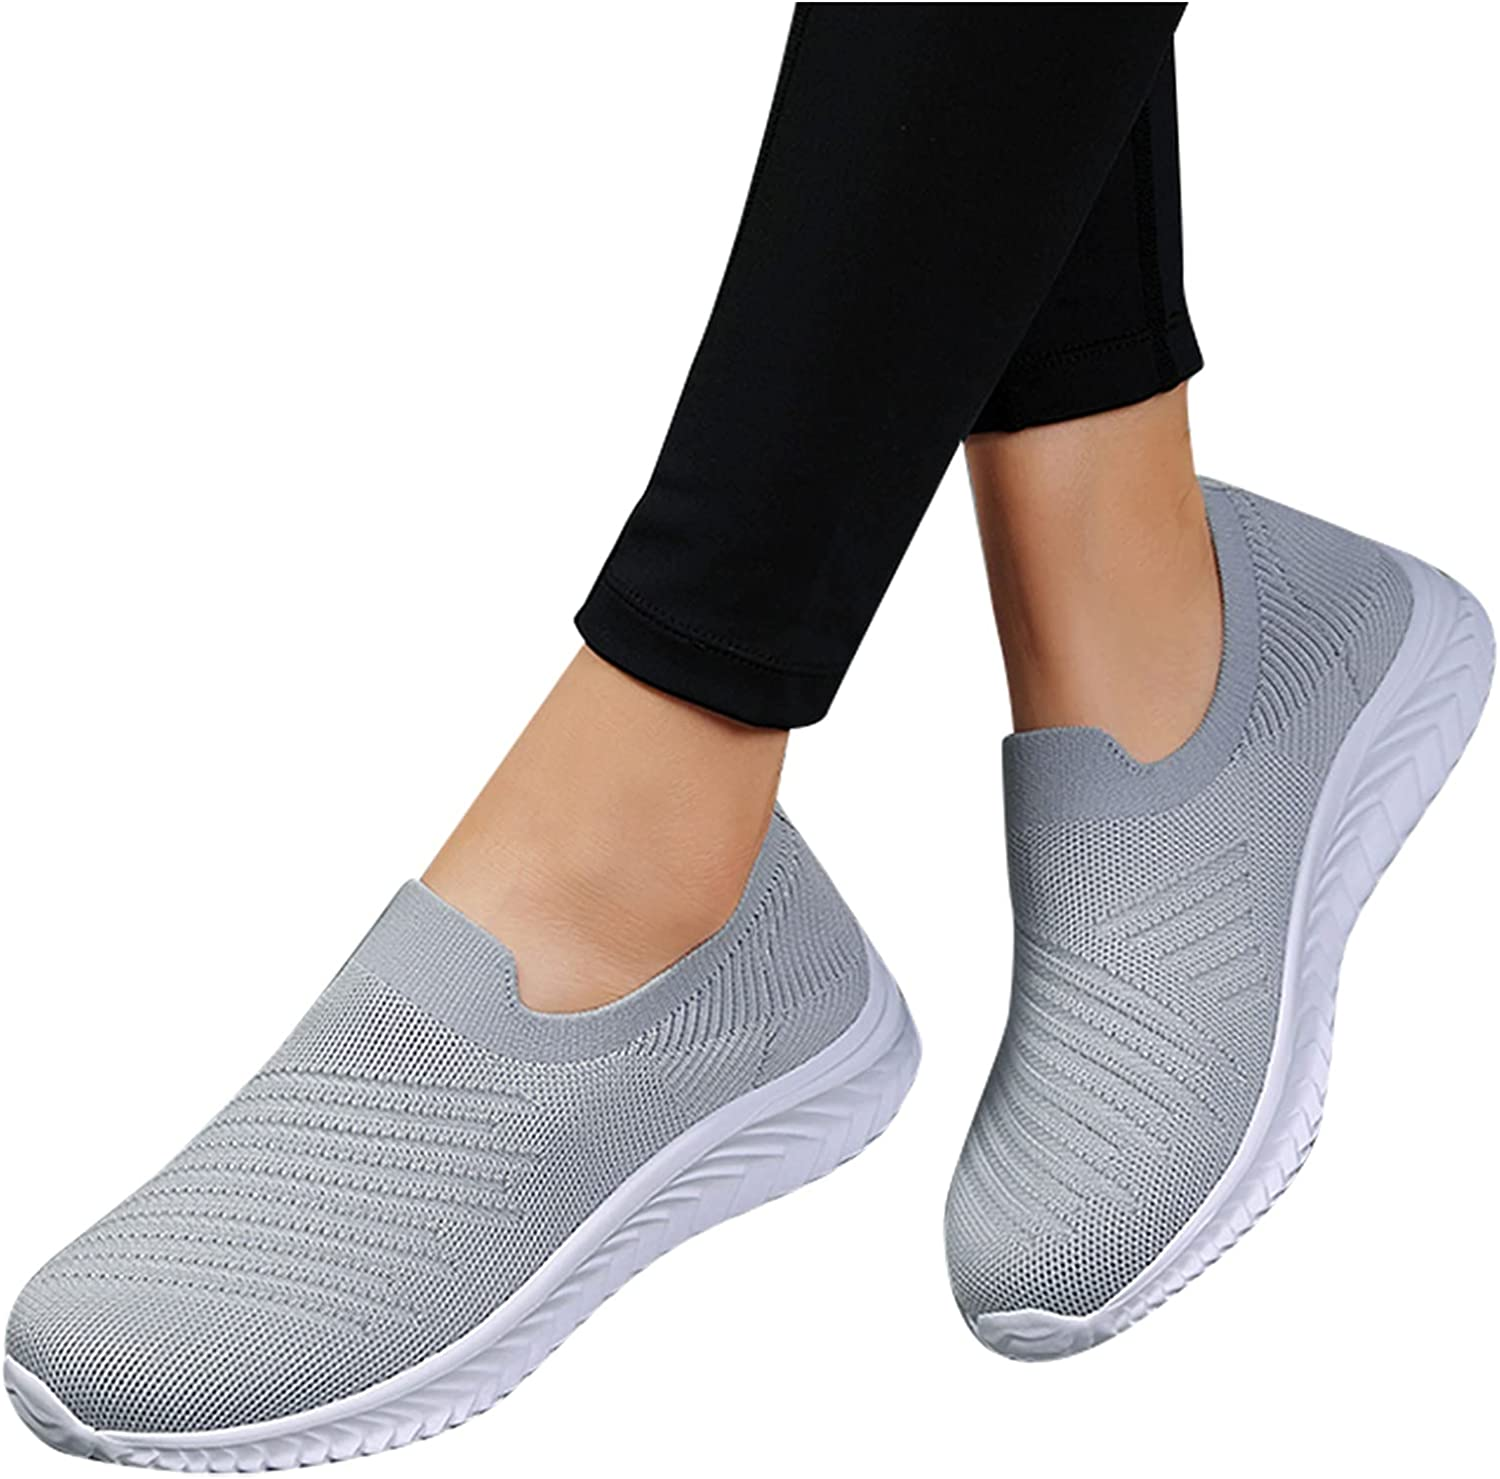 Hbeylia Walking Running Outdoor Sport Shoes For Women Men Couples Lightweigt Breathable Slip On Sneakers Comfortable Stretch Jogger Tennis Hiking Athletic Shoes Work Nurse Shoes